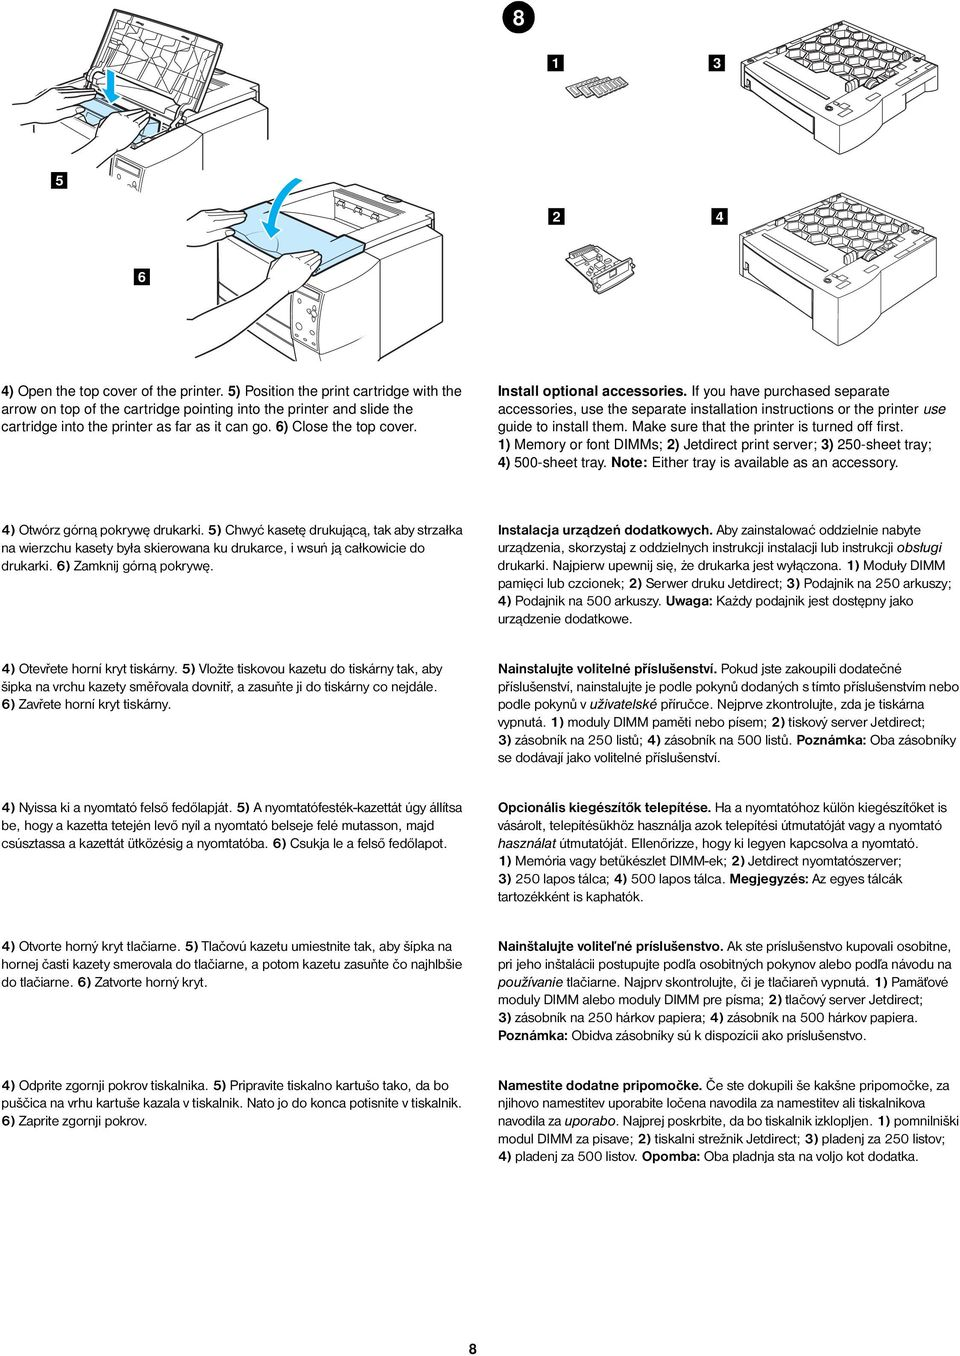 Install optional accessories. If you have purchased separate accessories, use the separate installation instructions or the printer use guide to install them.